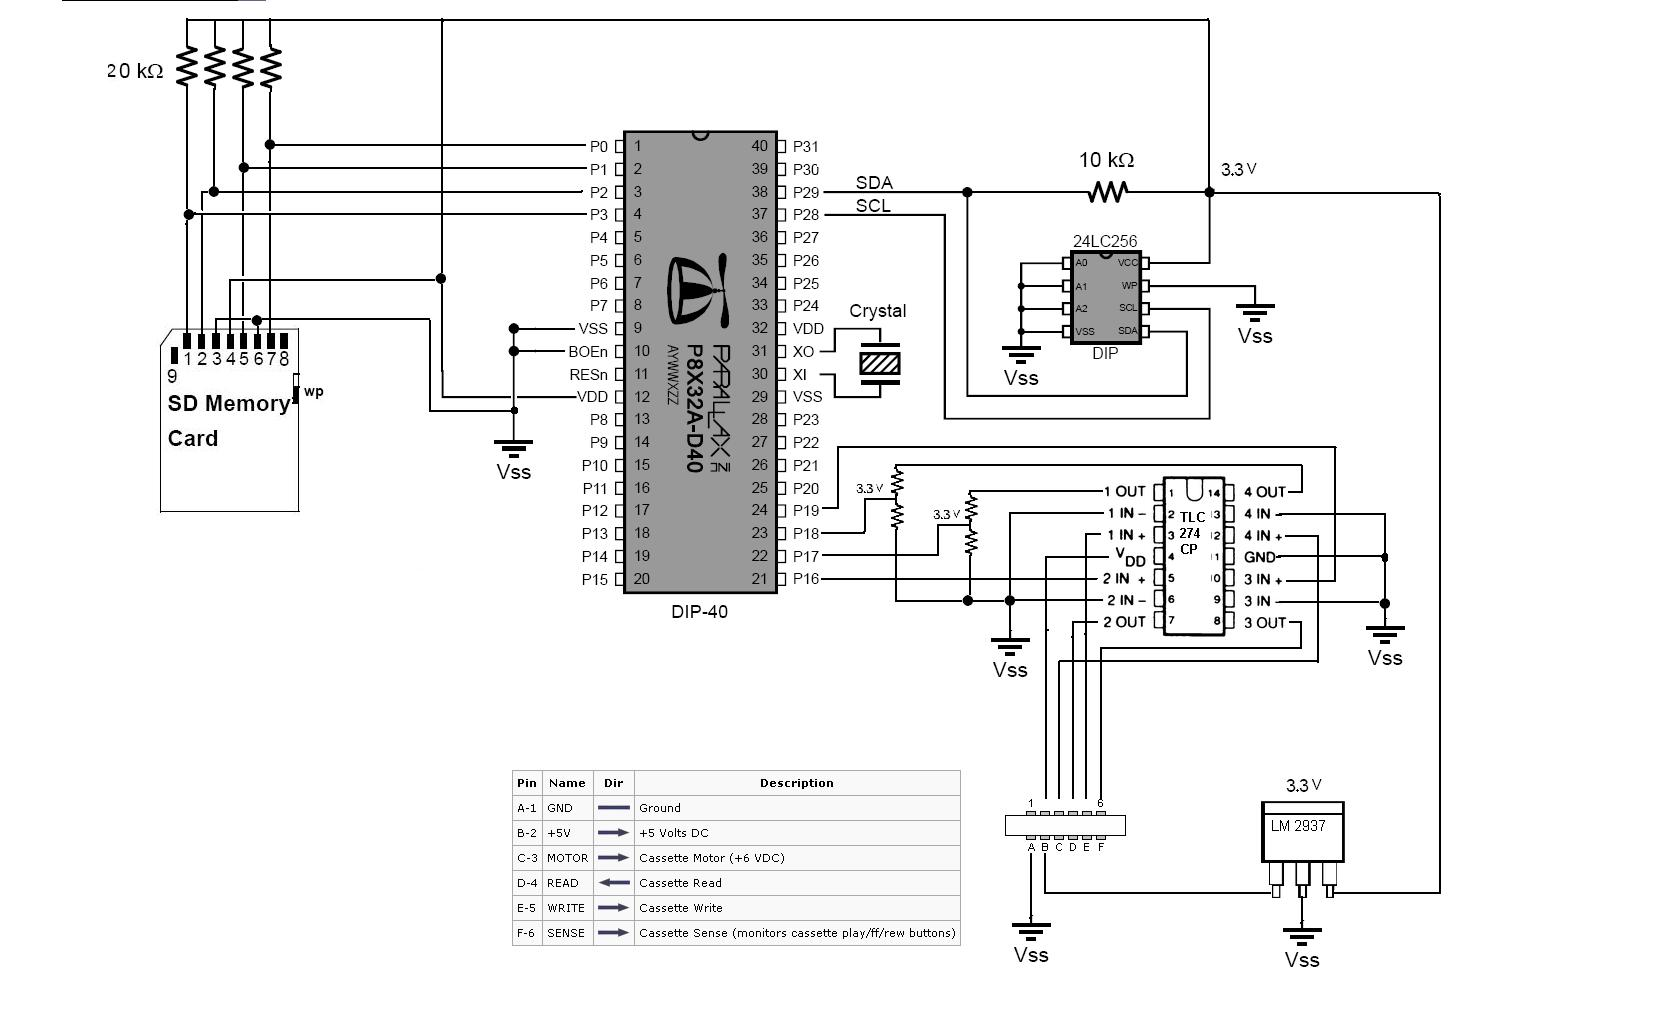 Code 3 2100 Wiring Diagram Code 3 LP6000 Wiring-Diagram